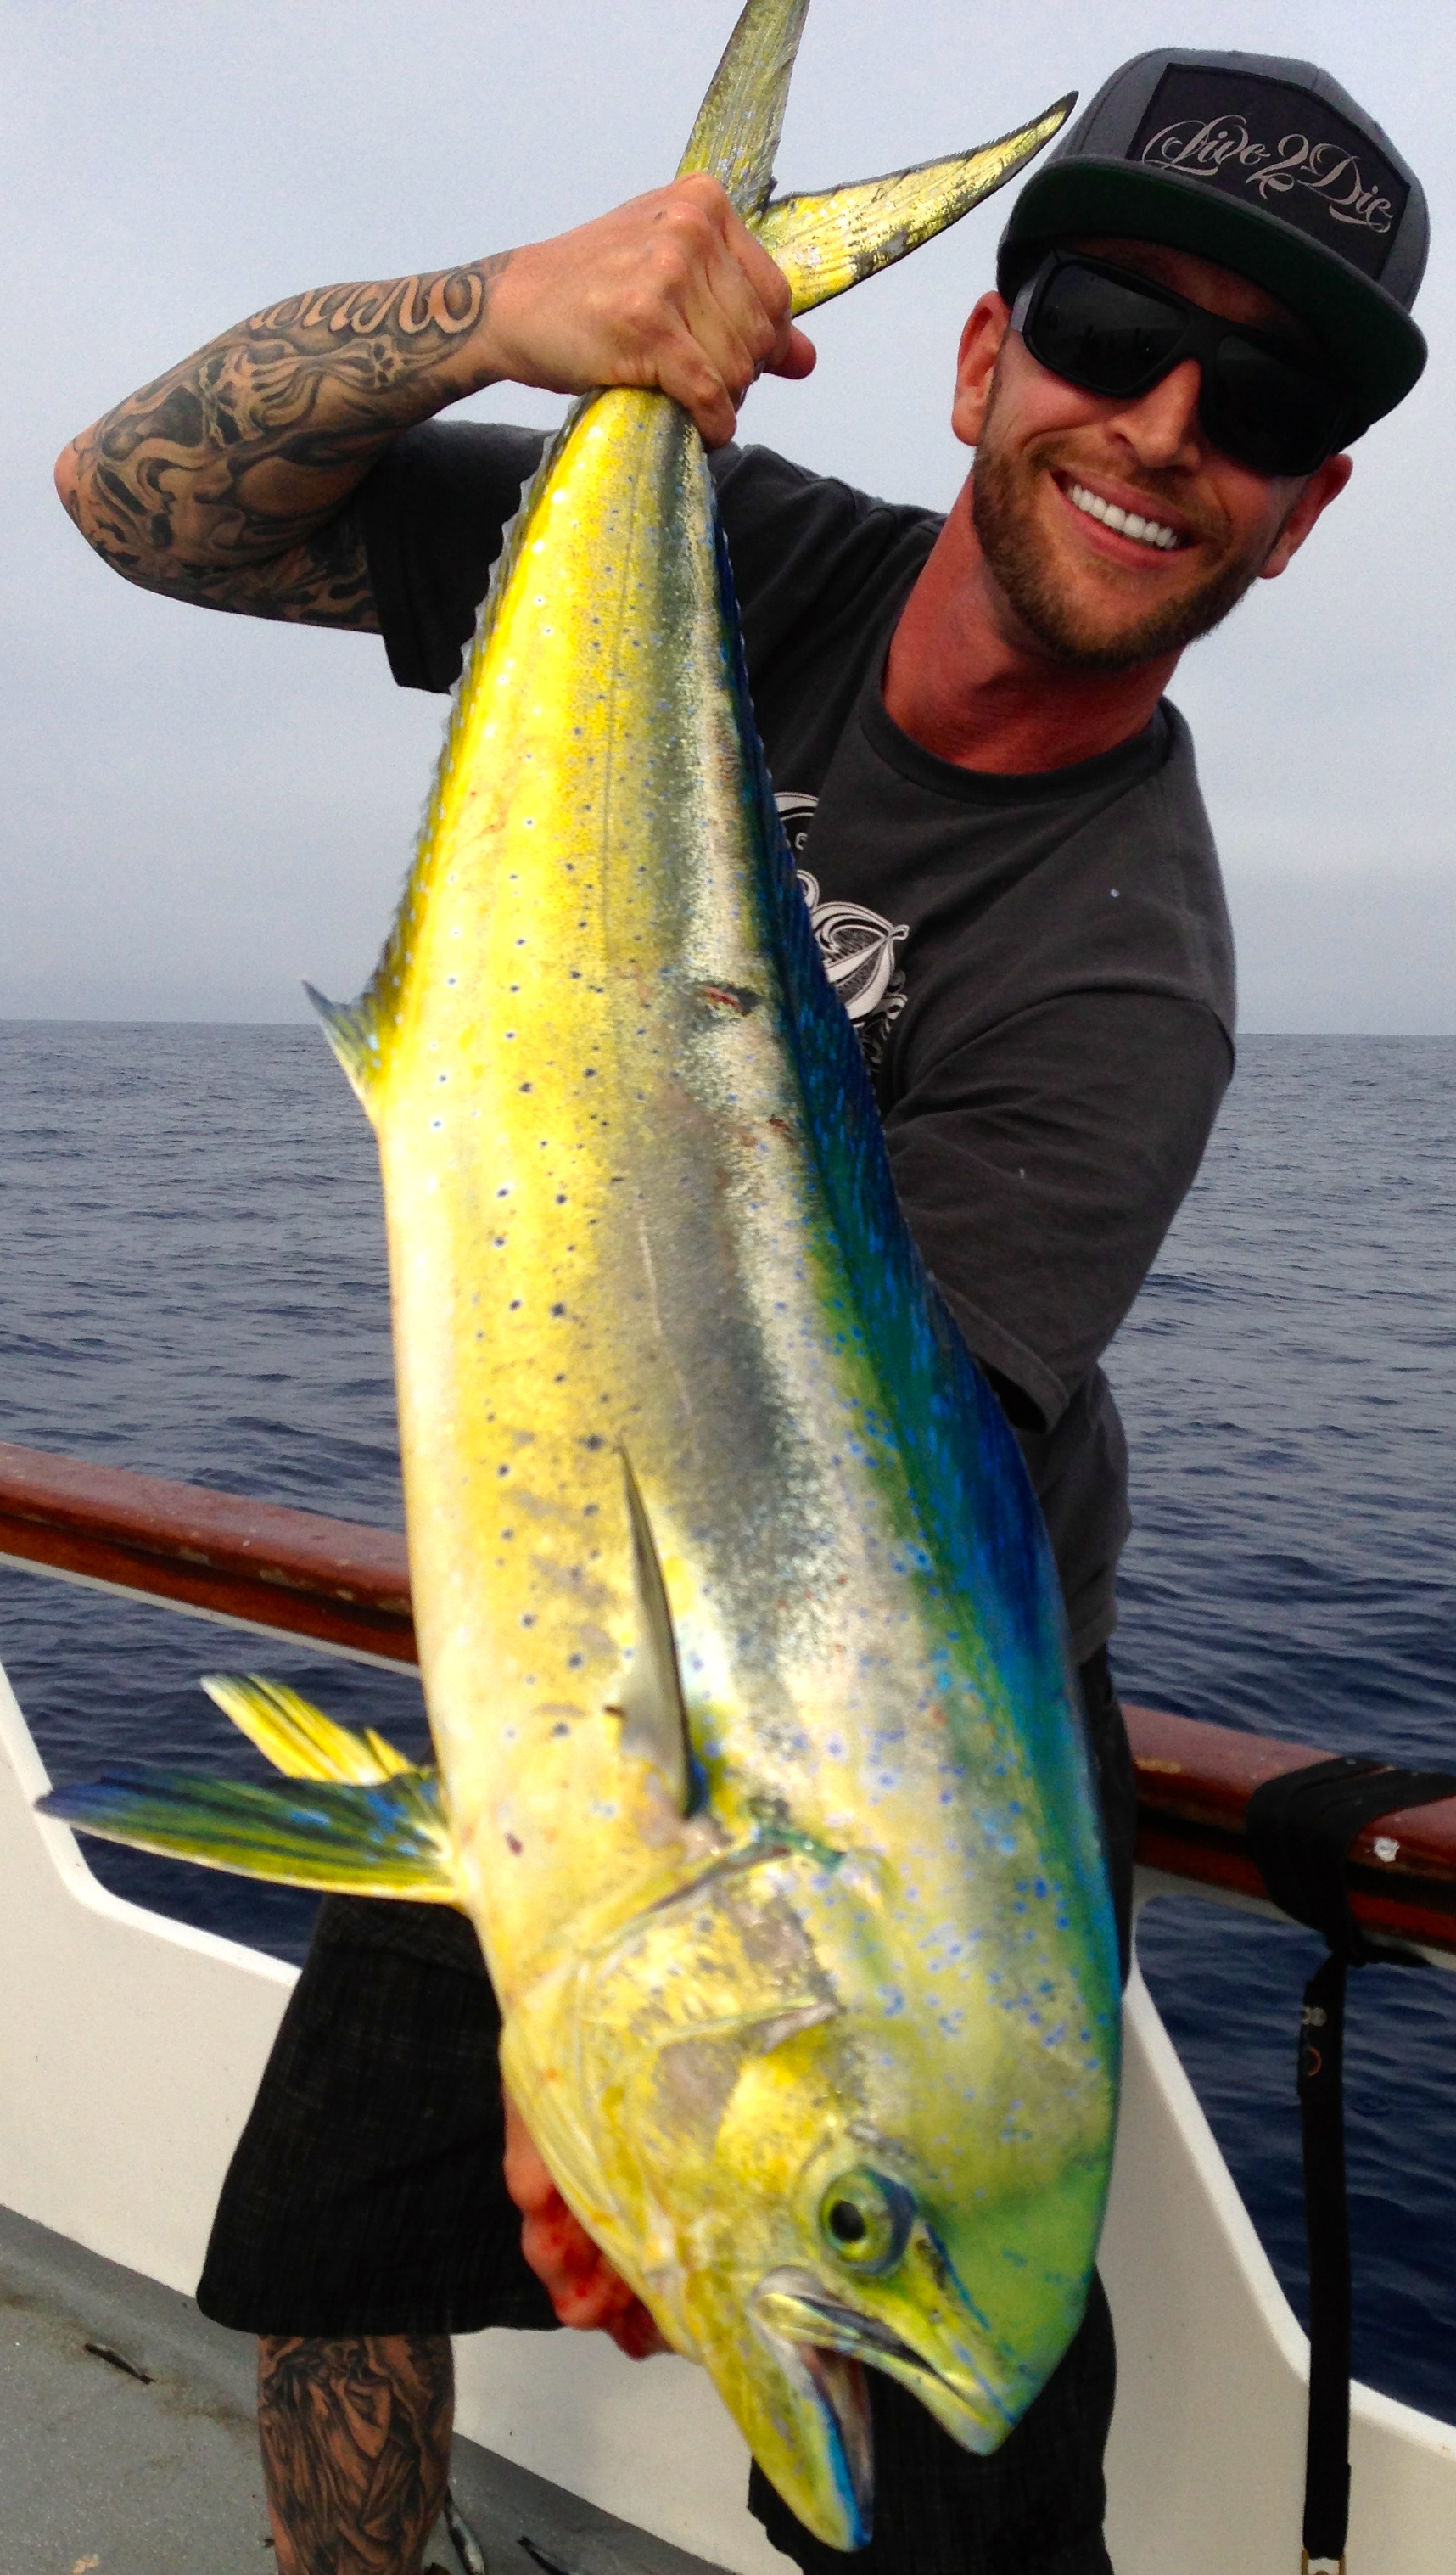 The season's first Dorado. What a beautiful fish, congrats Anthony!